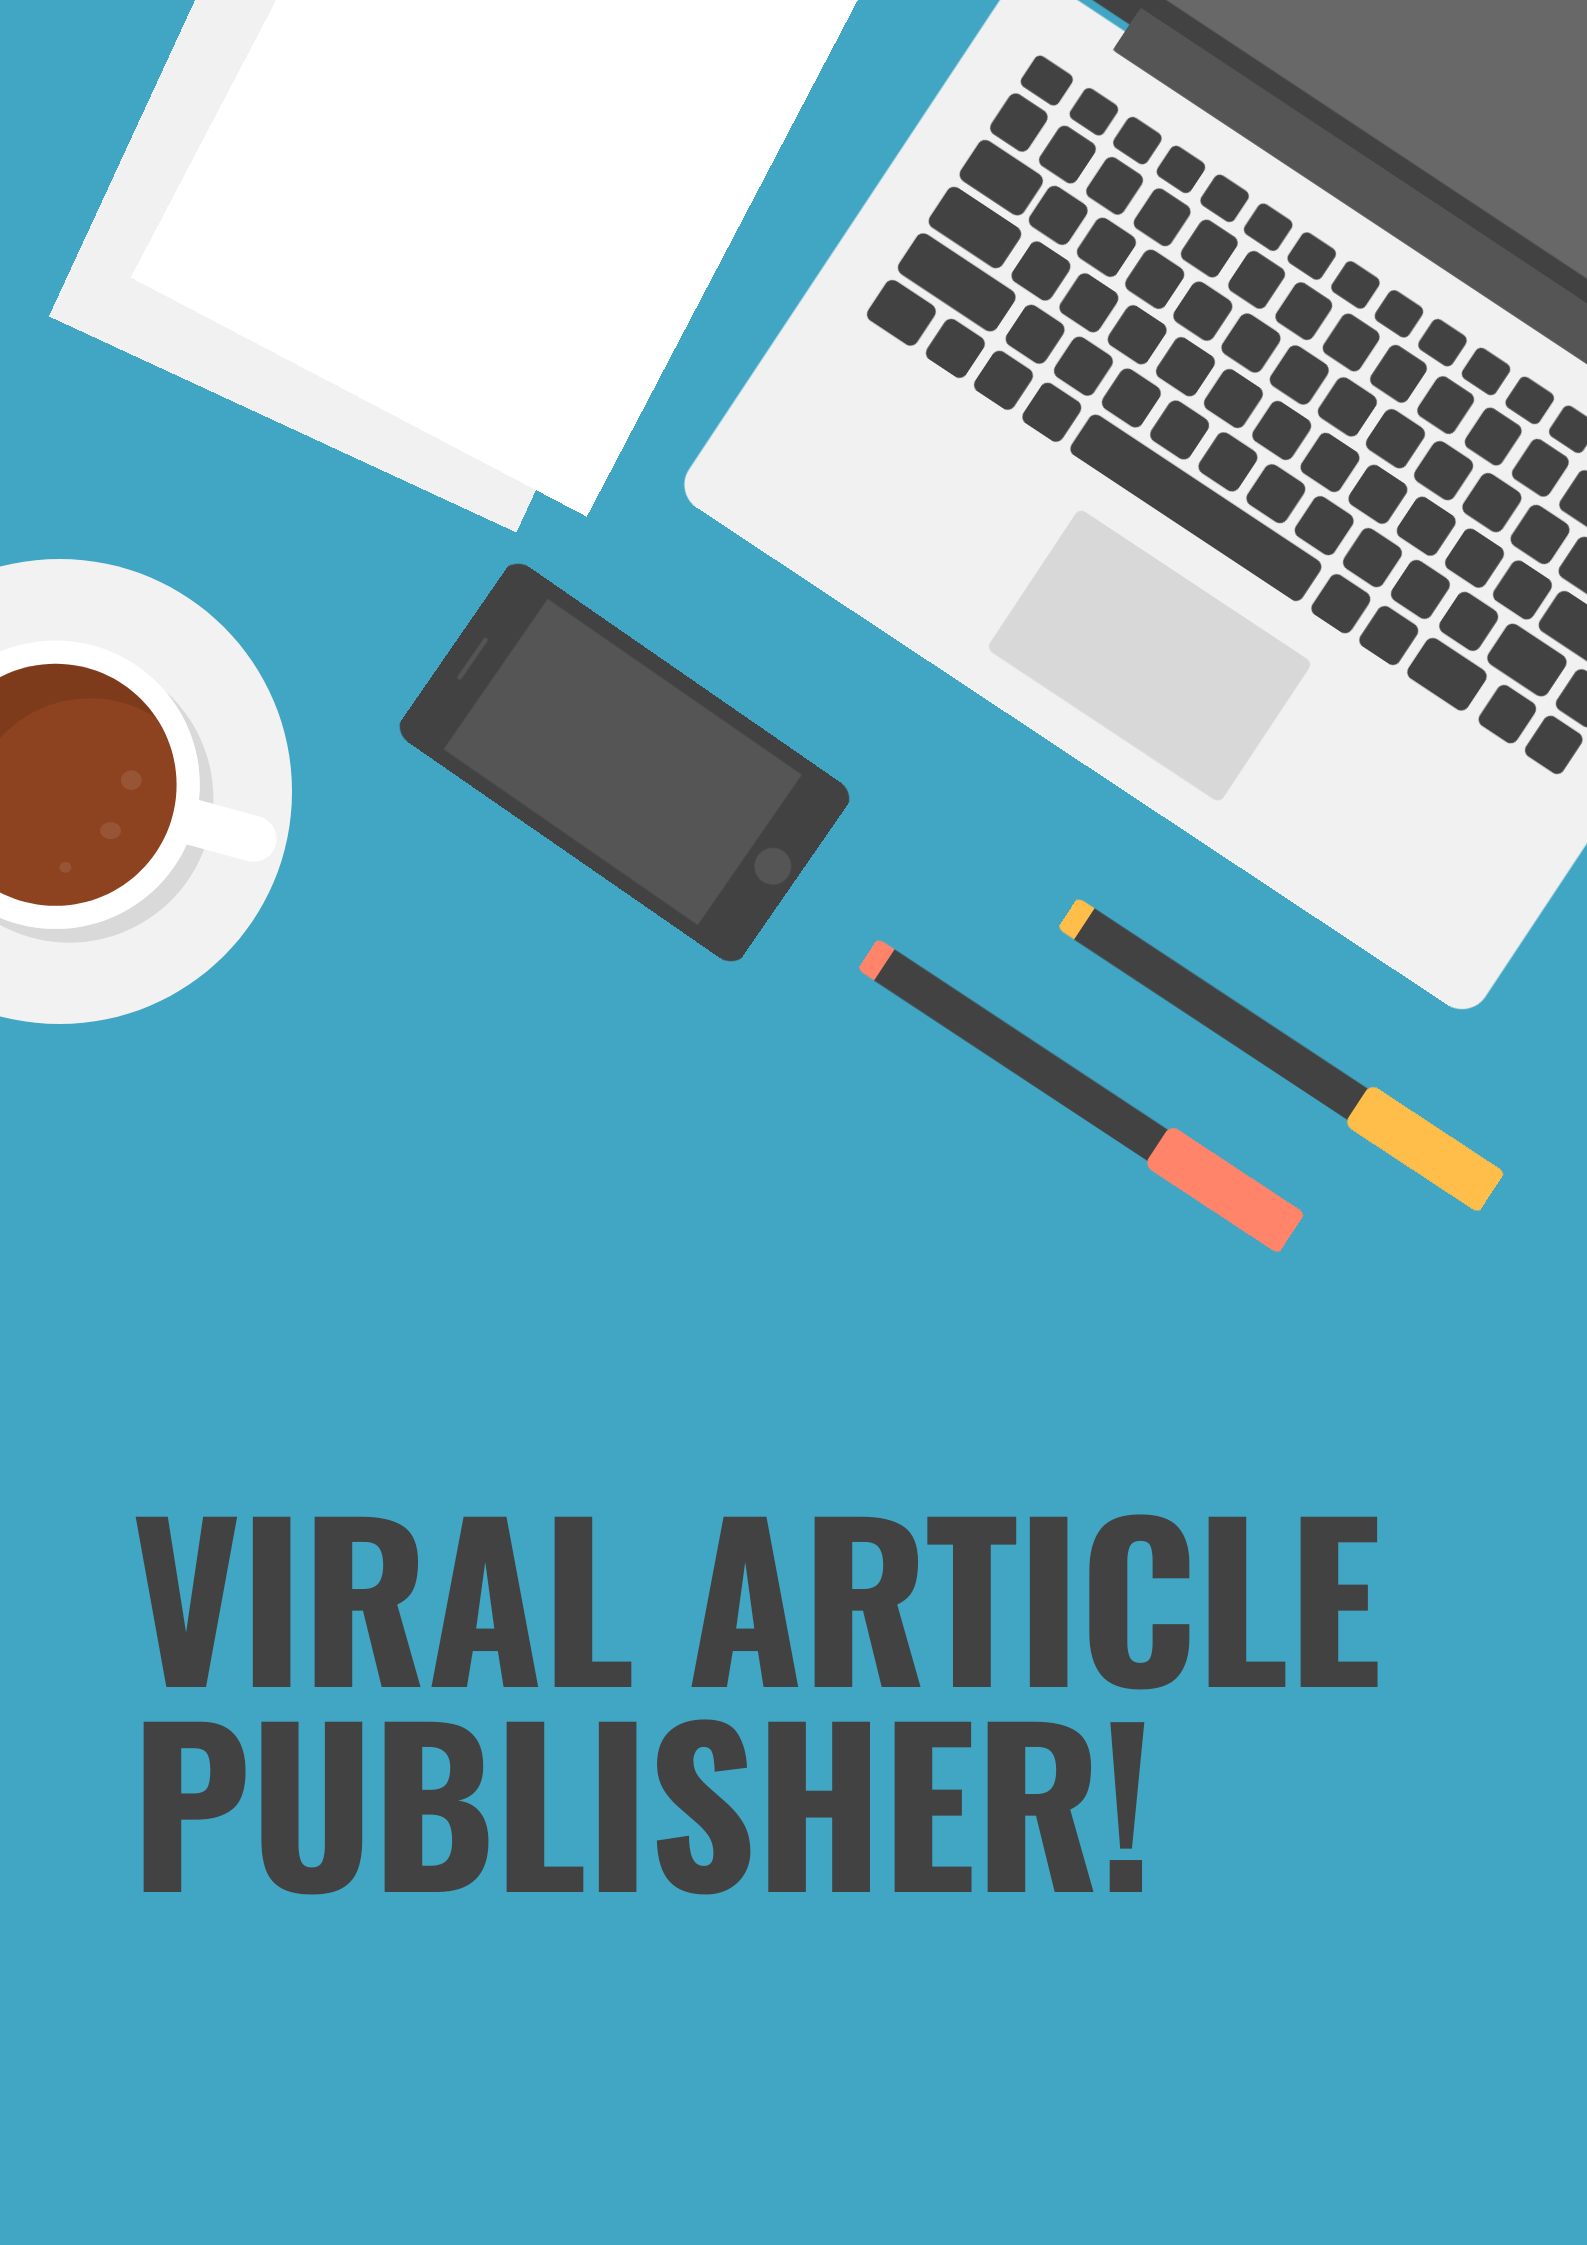 Best Tool to help advertise your articles and to as many sites as one wants hence making them viral.